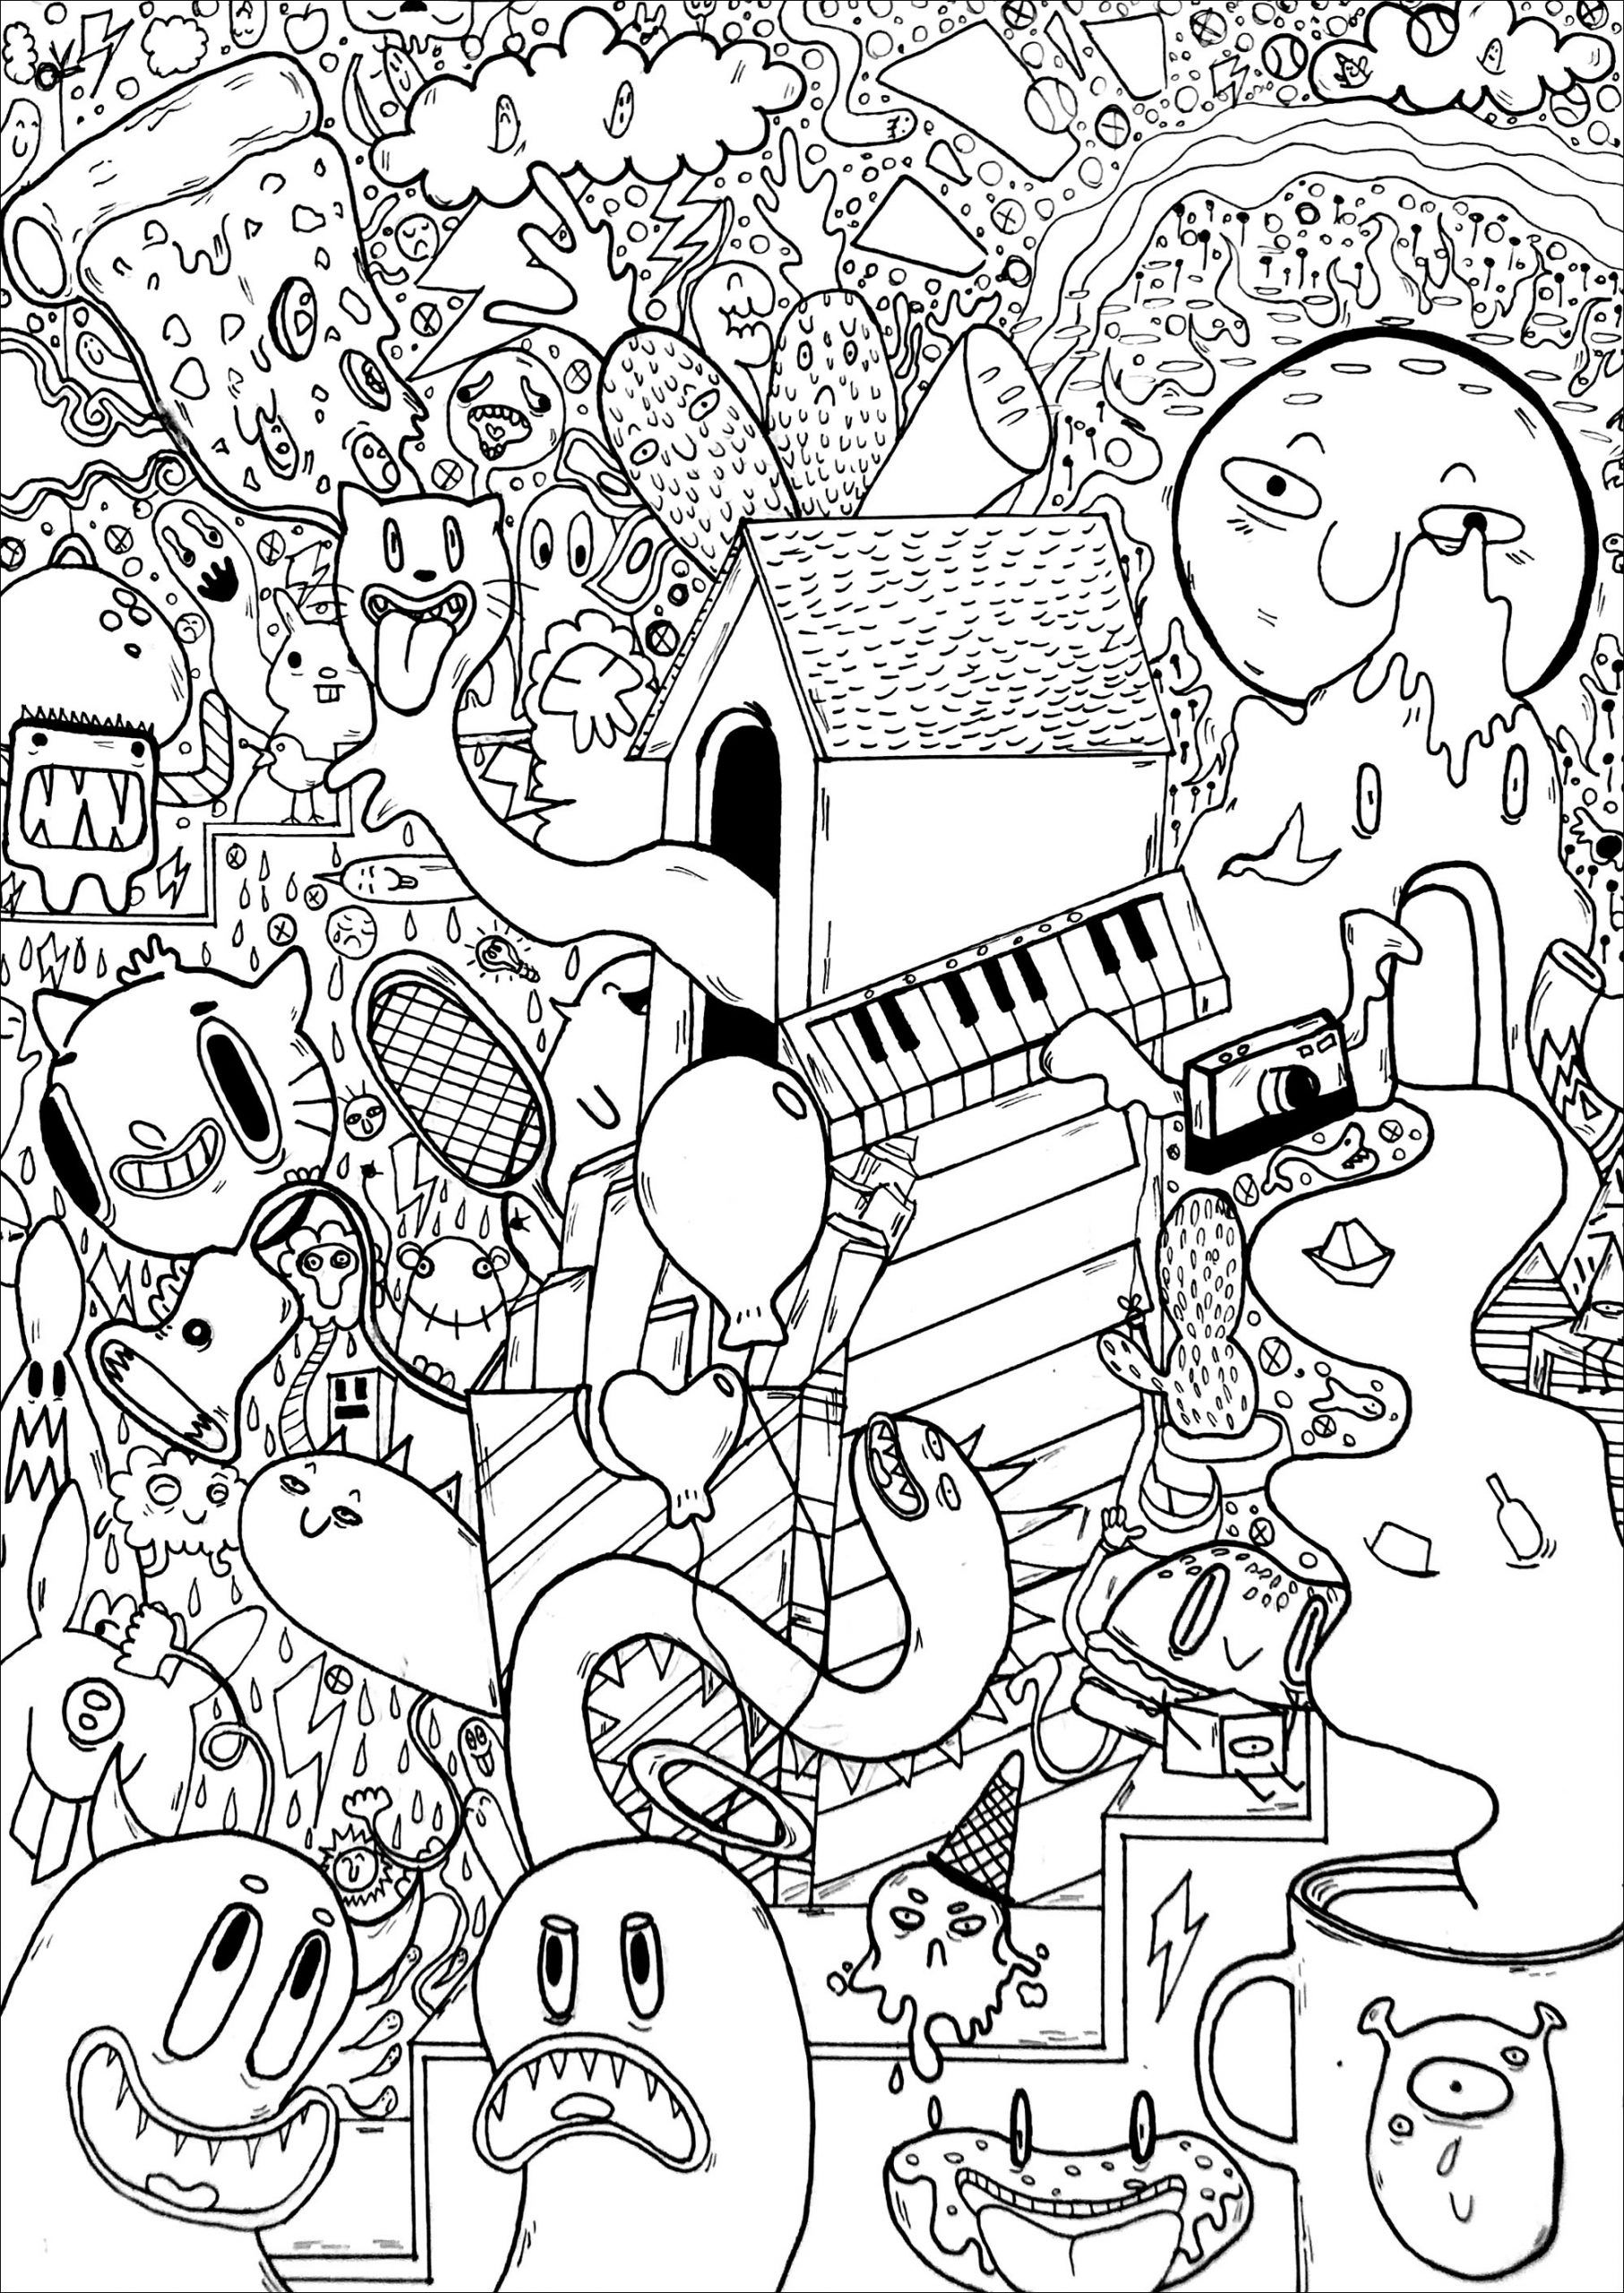 Piano Coloring Pages Keyboard Colouring Page Theory Lesson Print Keys Sheets Free Printable Notes Doodle Pizza Middle Ages Ash Pokemon Of Transformers Big